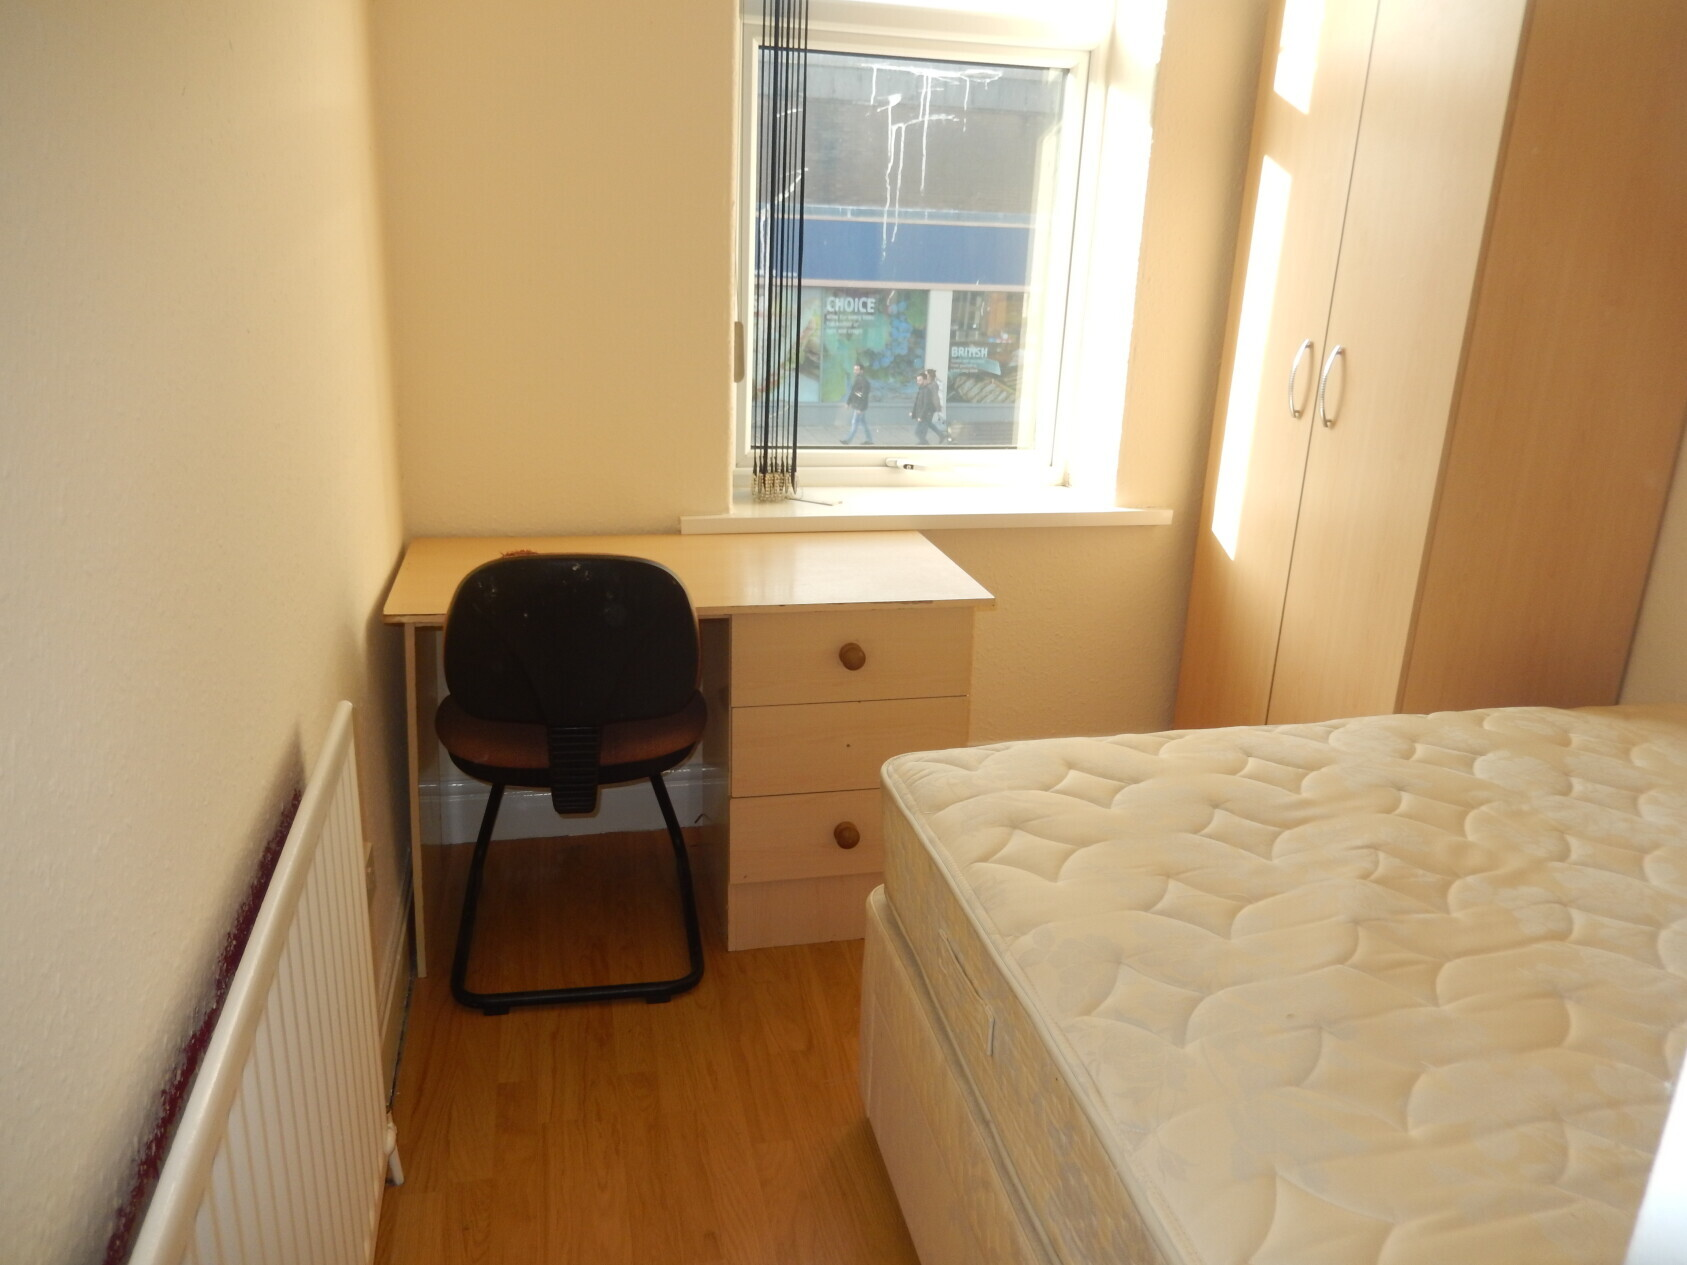 3 bedroom student apartment in Heaton, Newcastle